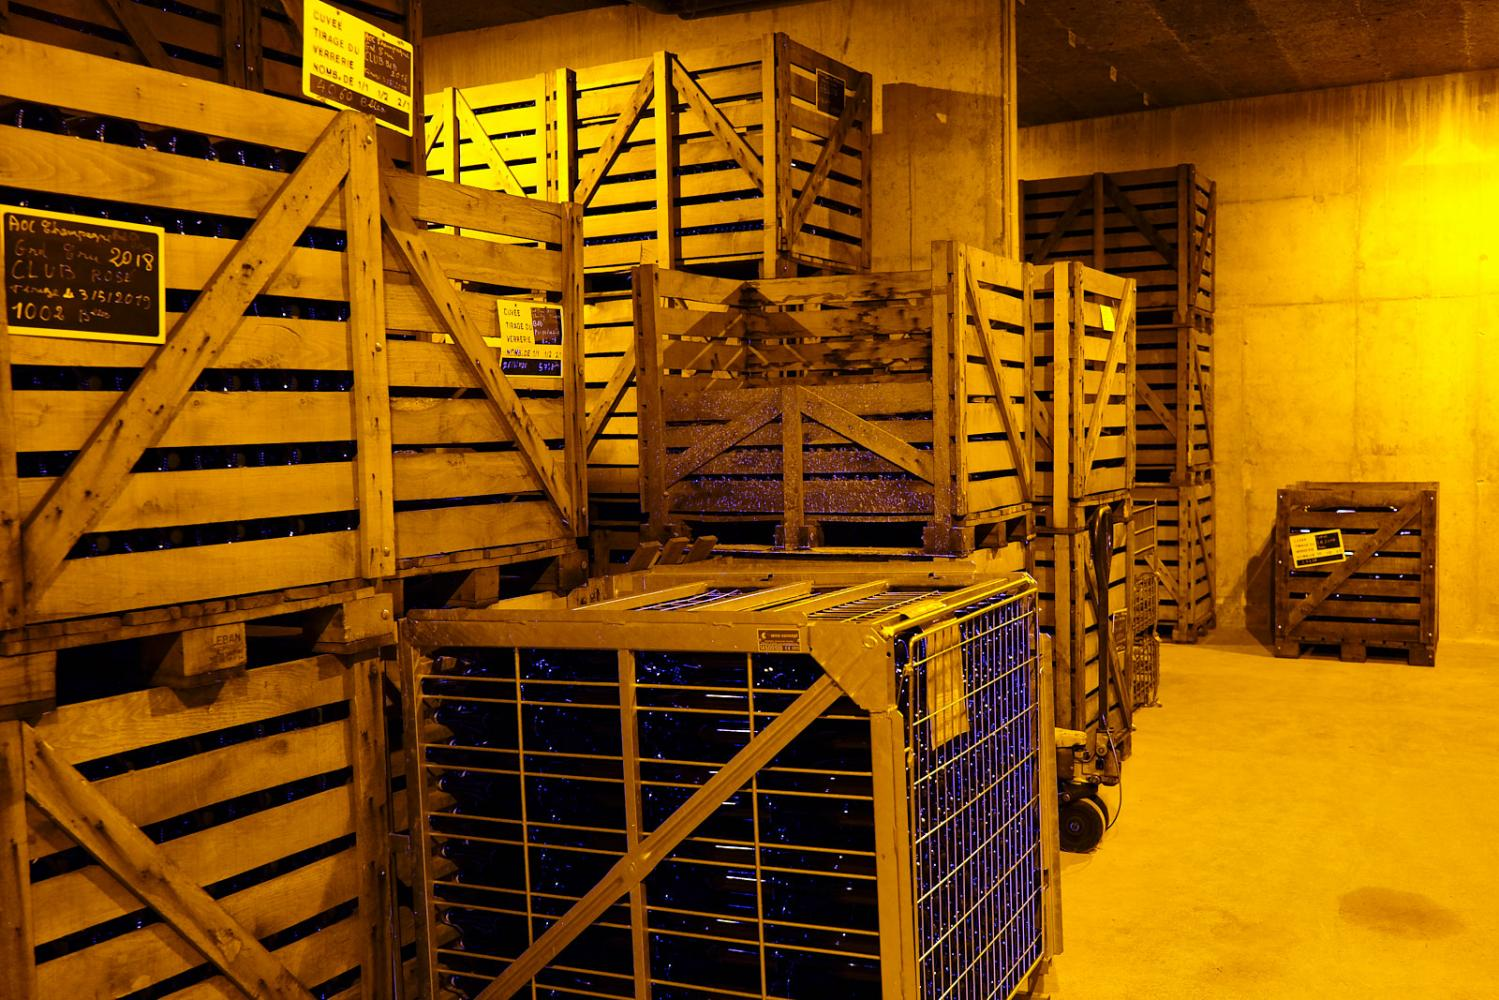 The cellar of the Vazart-Coquart & fils champagne house in Chouilly